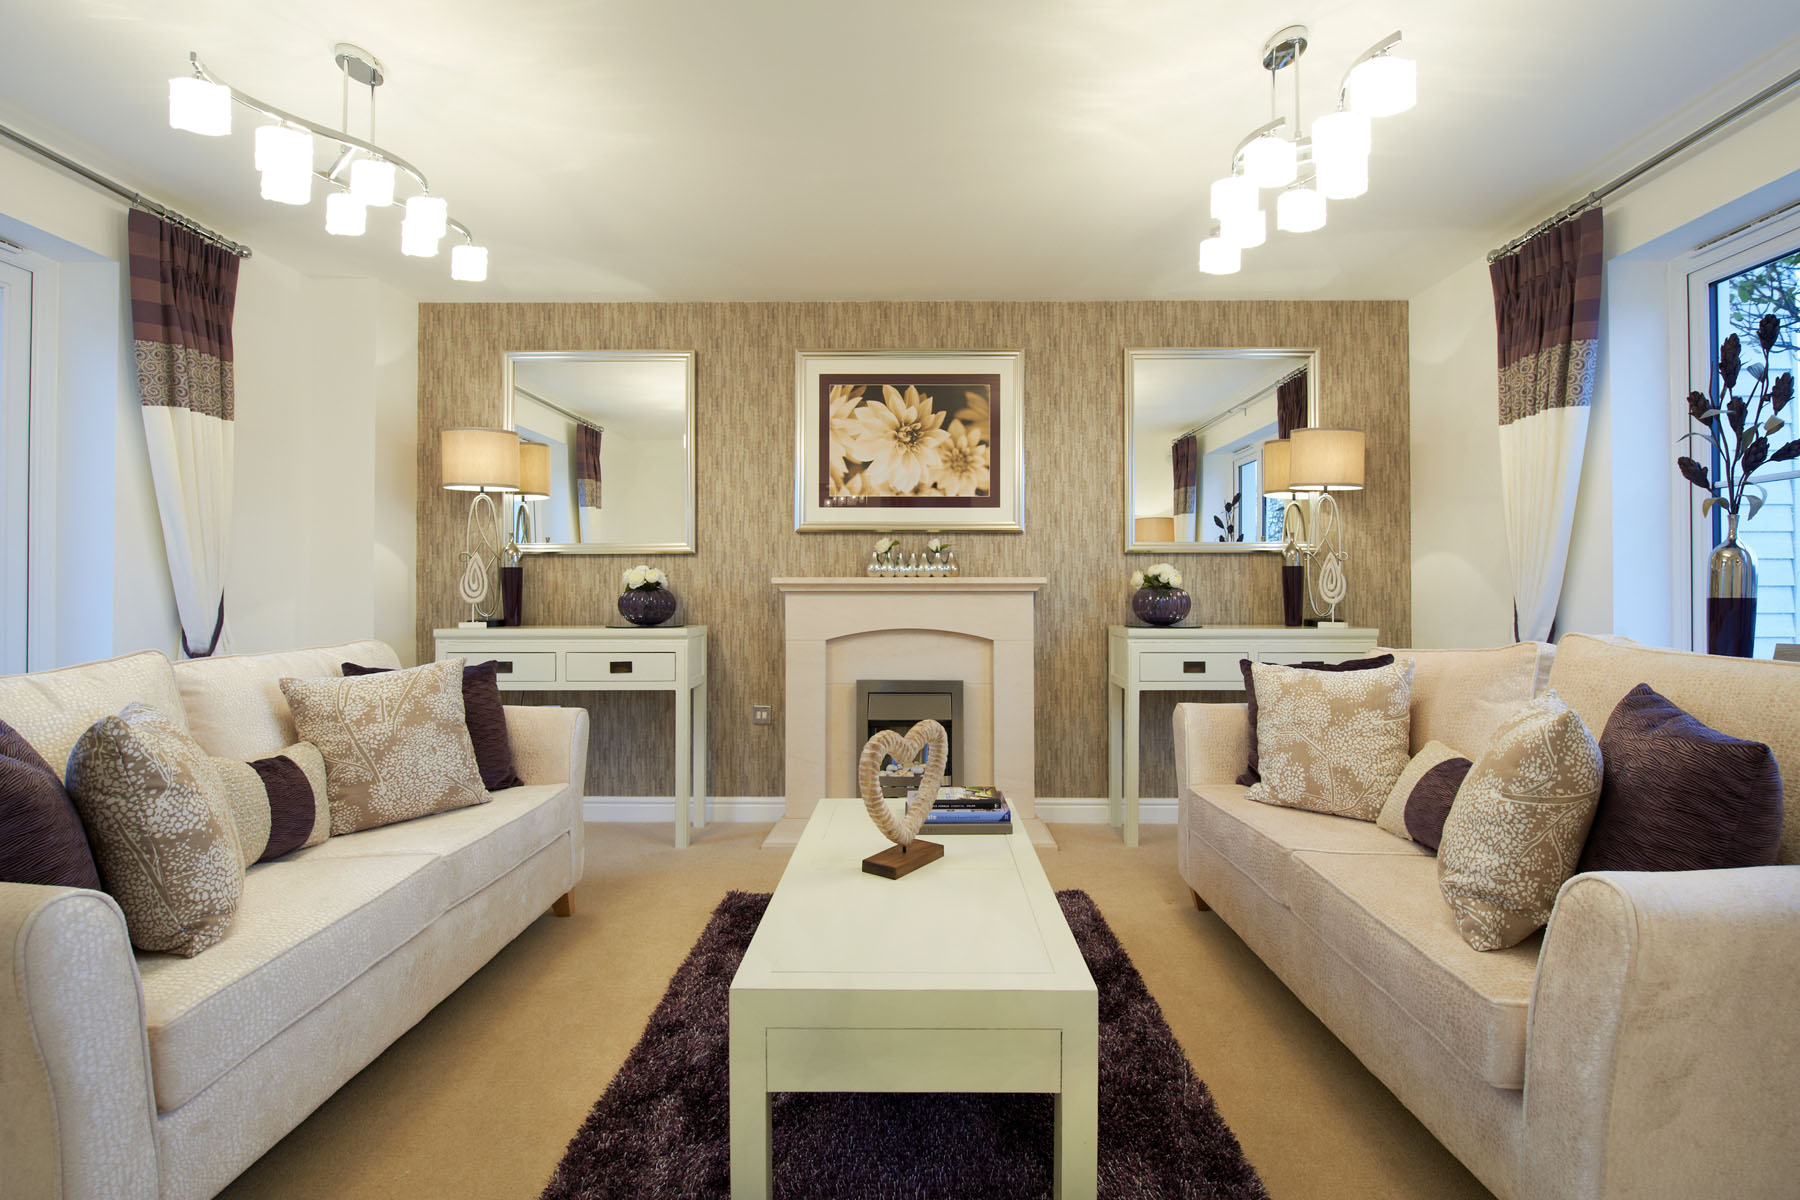 A typical Taylor Wimpey living room